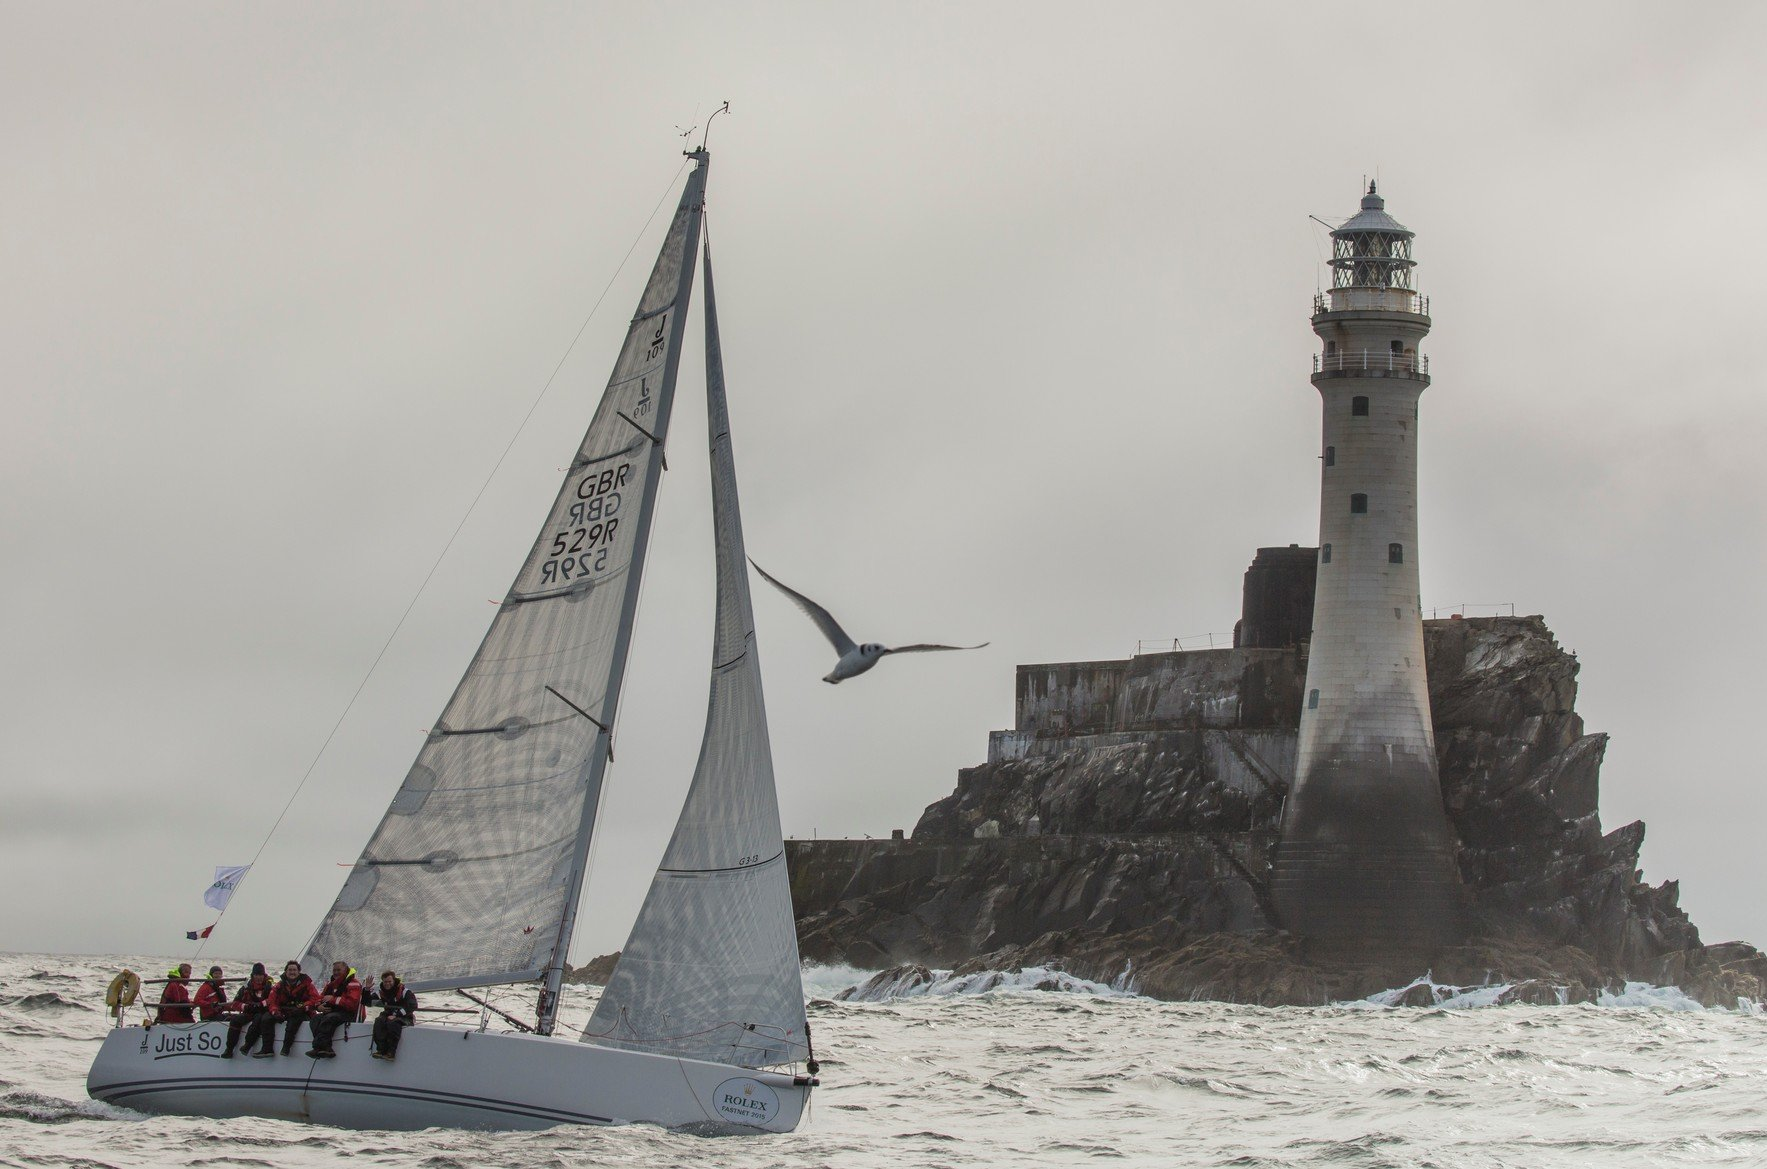 The Fastnet Race 2017 is a famous race.